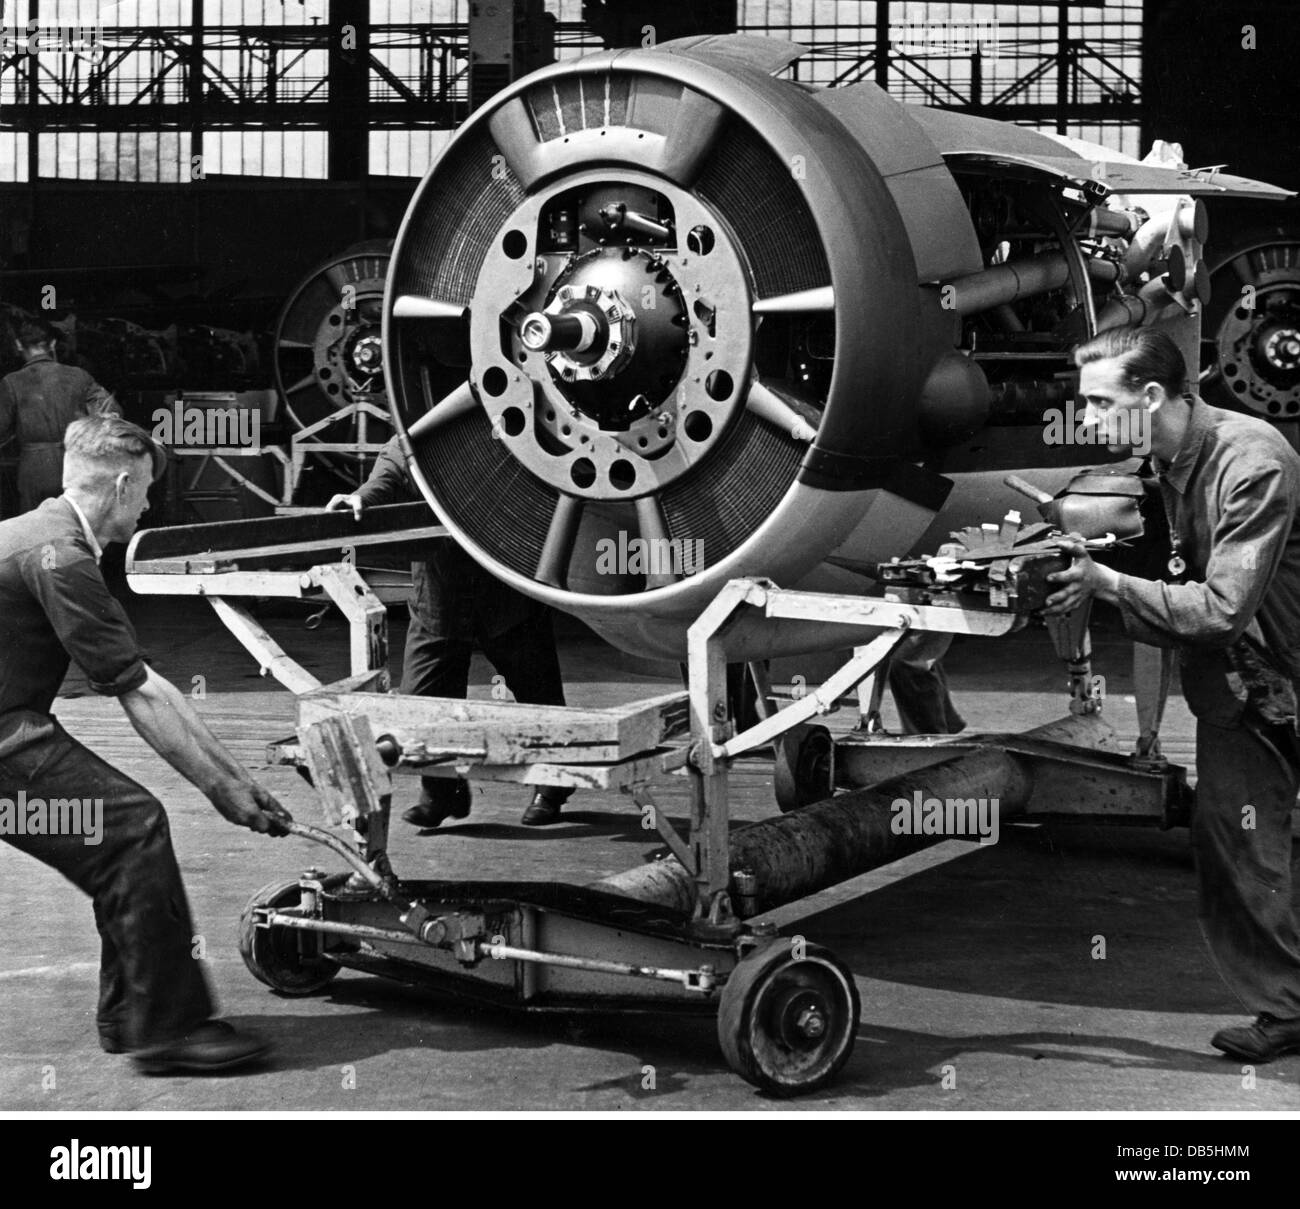 events, Second World War / WWII, Germany, armaments industry, German aircraft engine Jumo 211 for a medium bomber - Stock Image